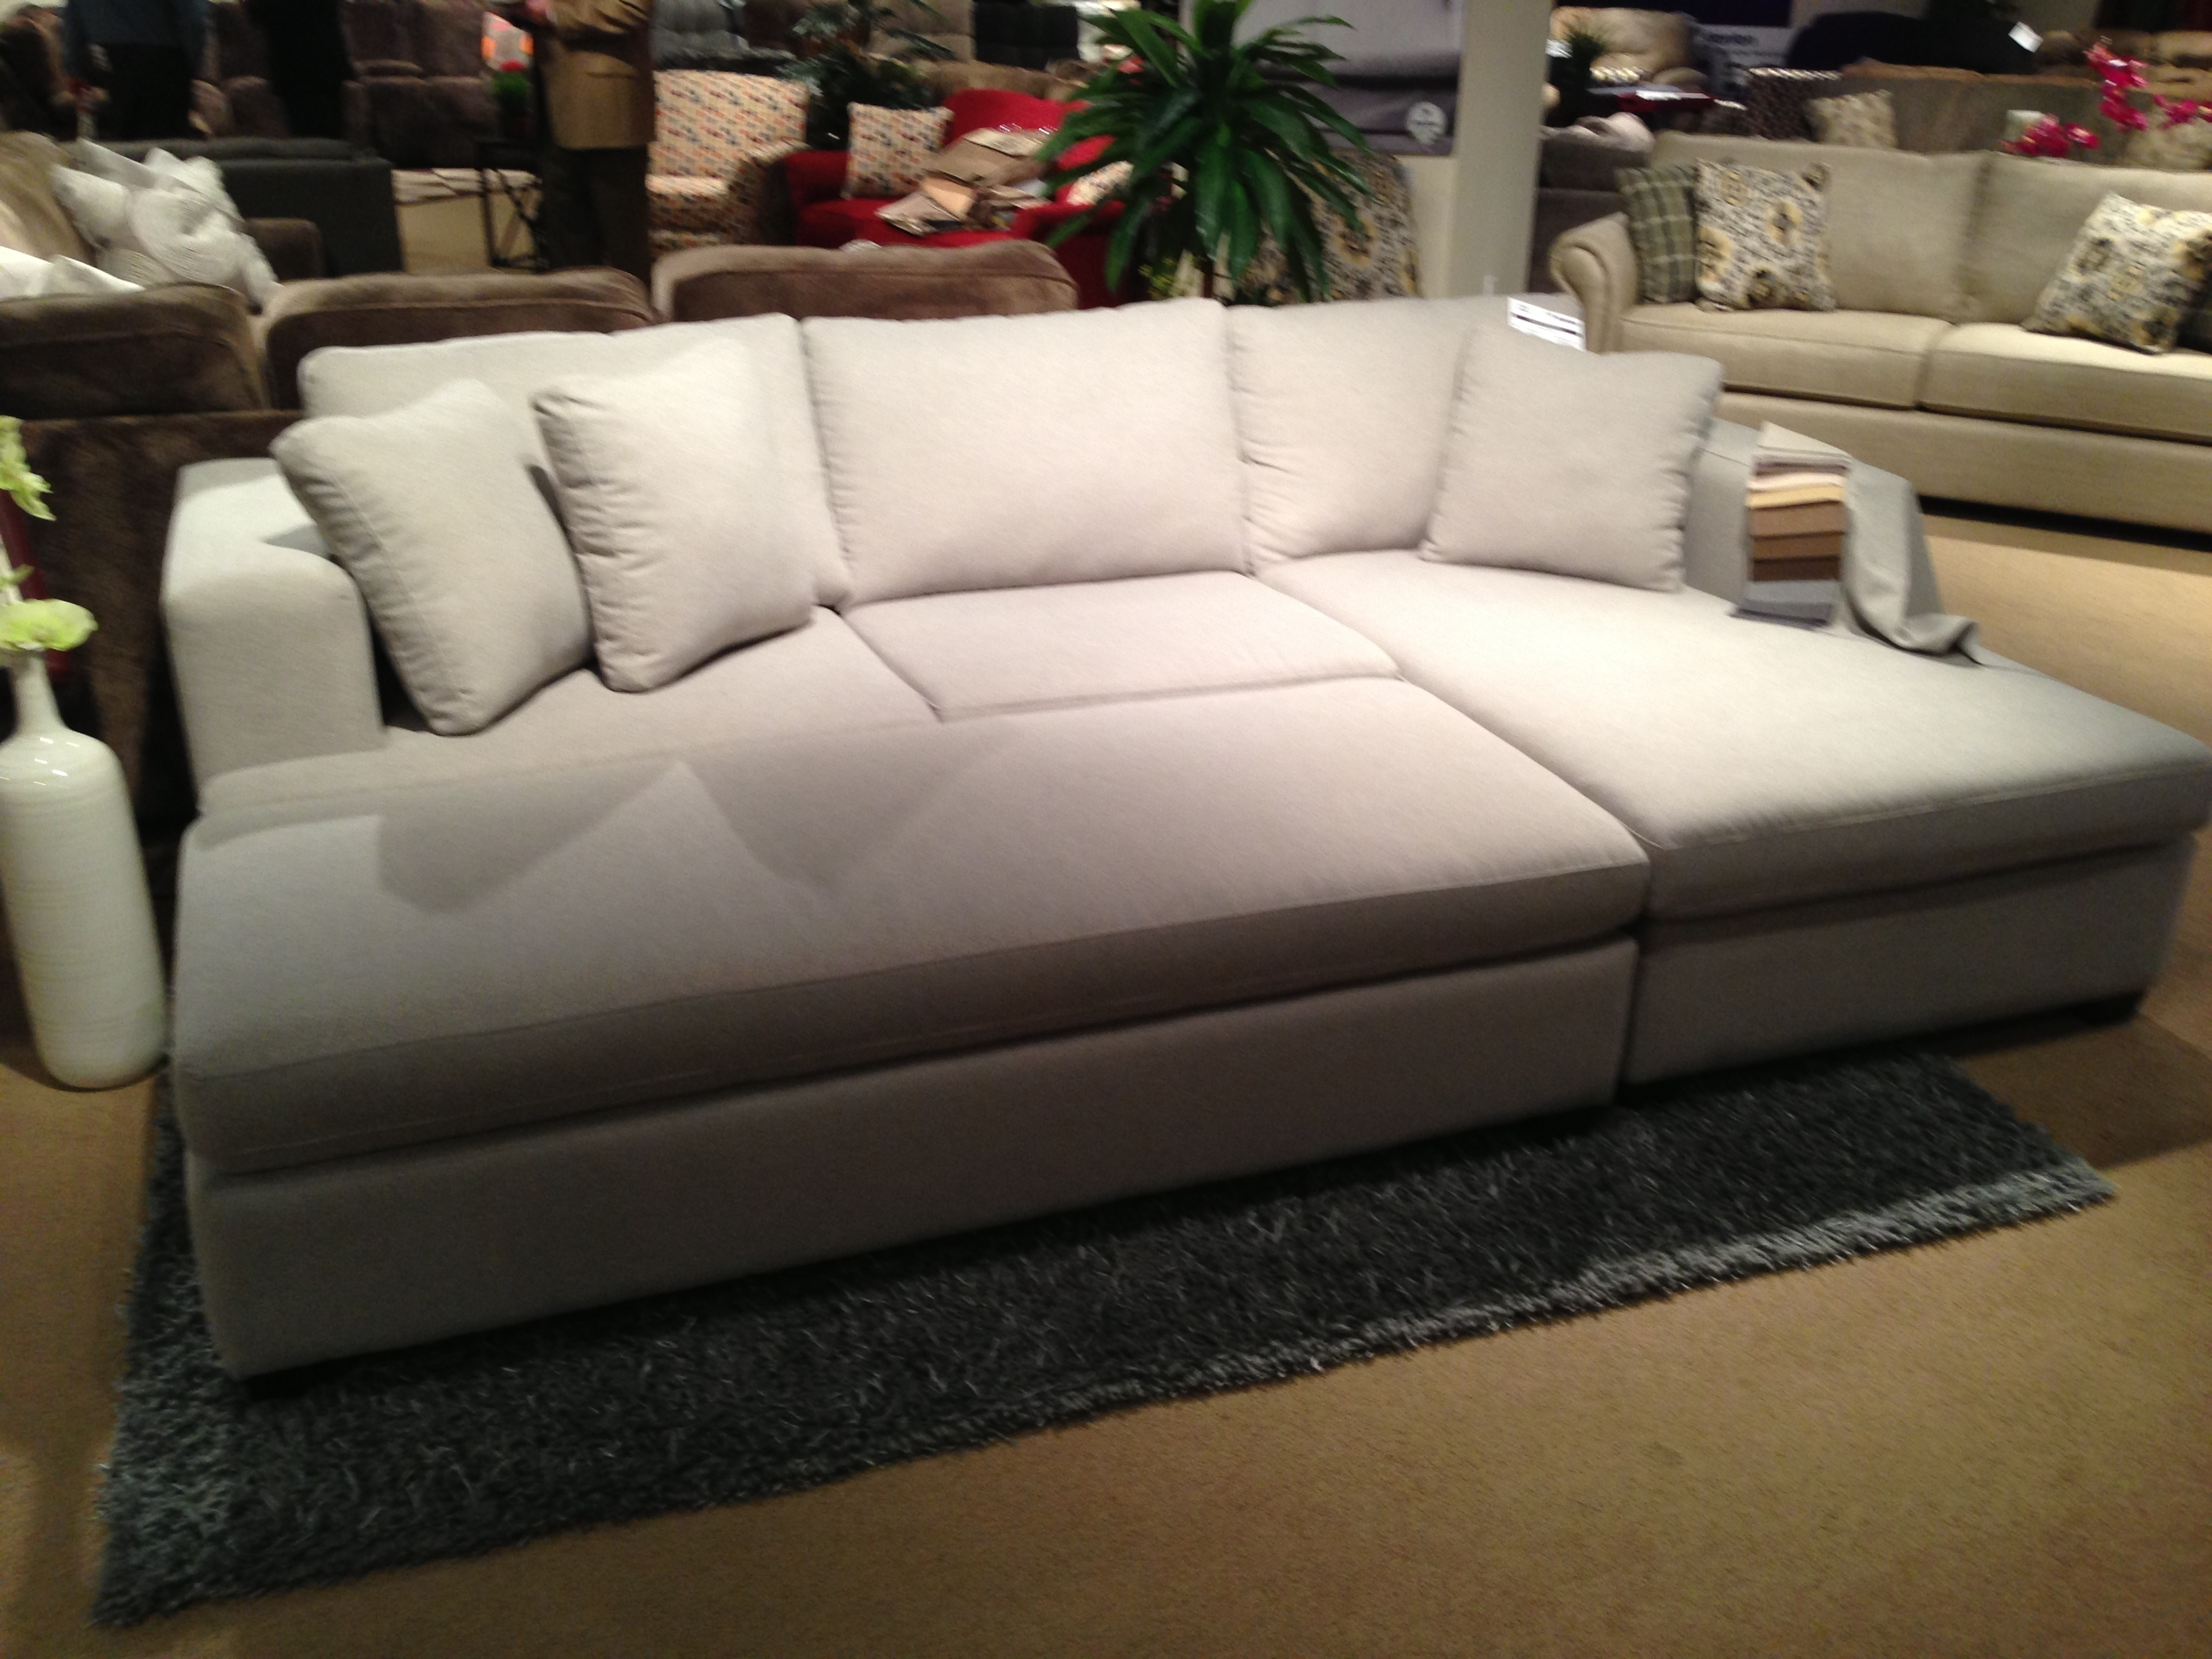 Sectional | Tweetalk with regard to Sectionals With Ottoman (Image 14 of 15)